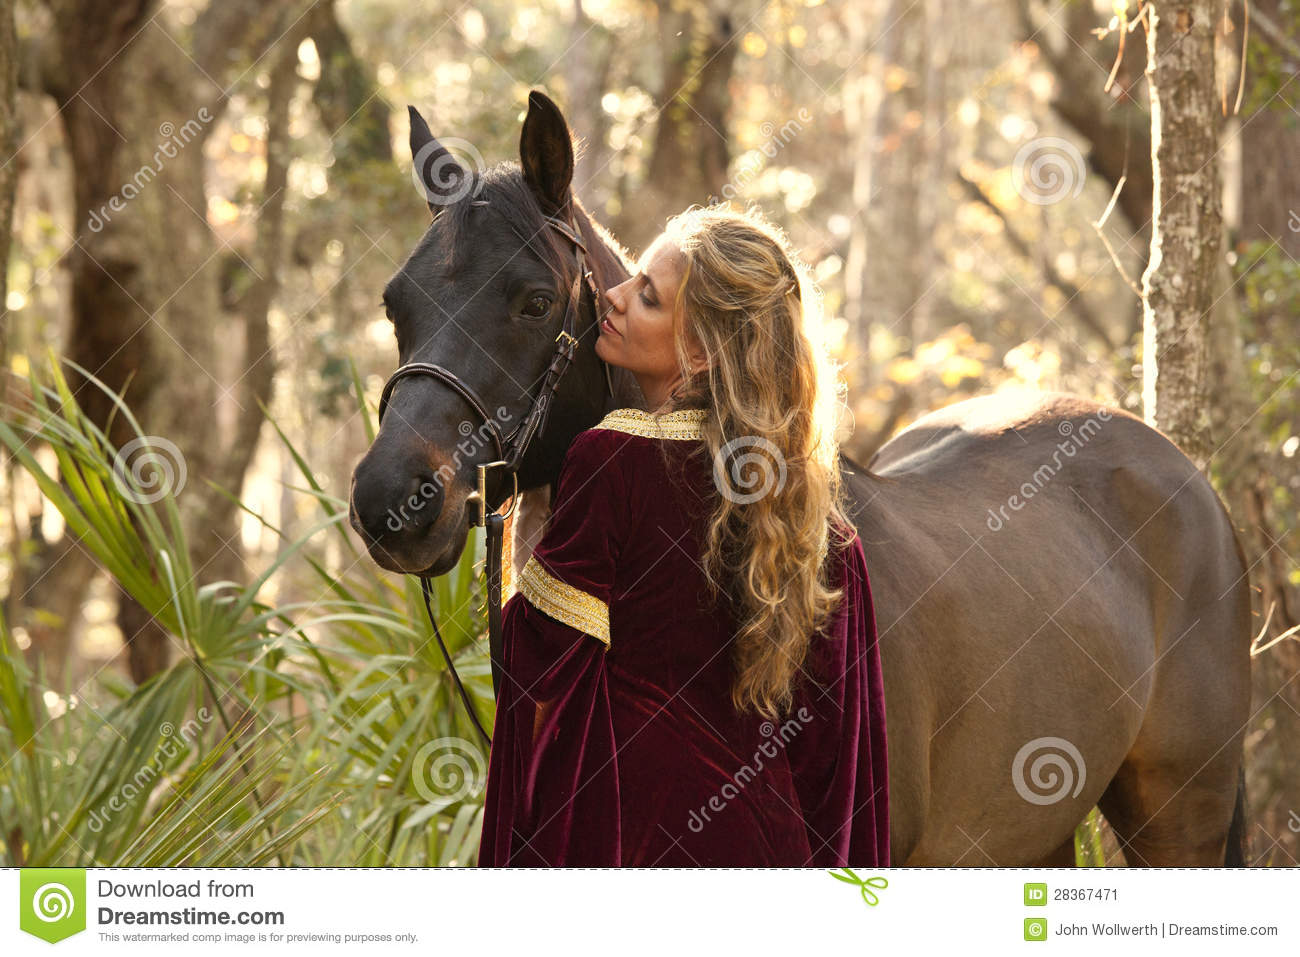 Wallpaper Download Alone Girl Woman In Medieval Dress With Horse Stock Image Image